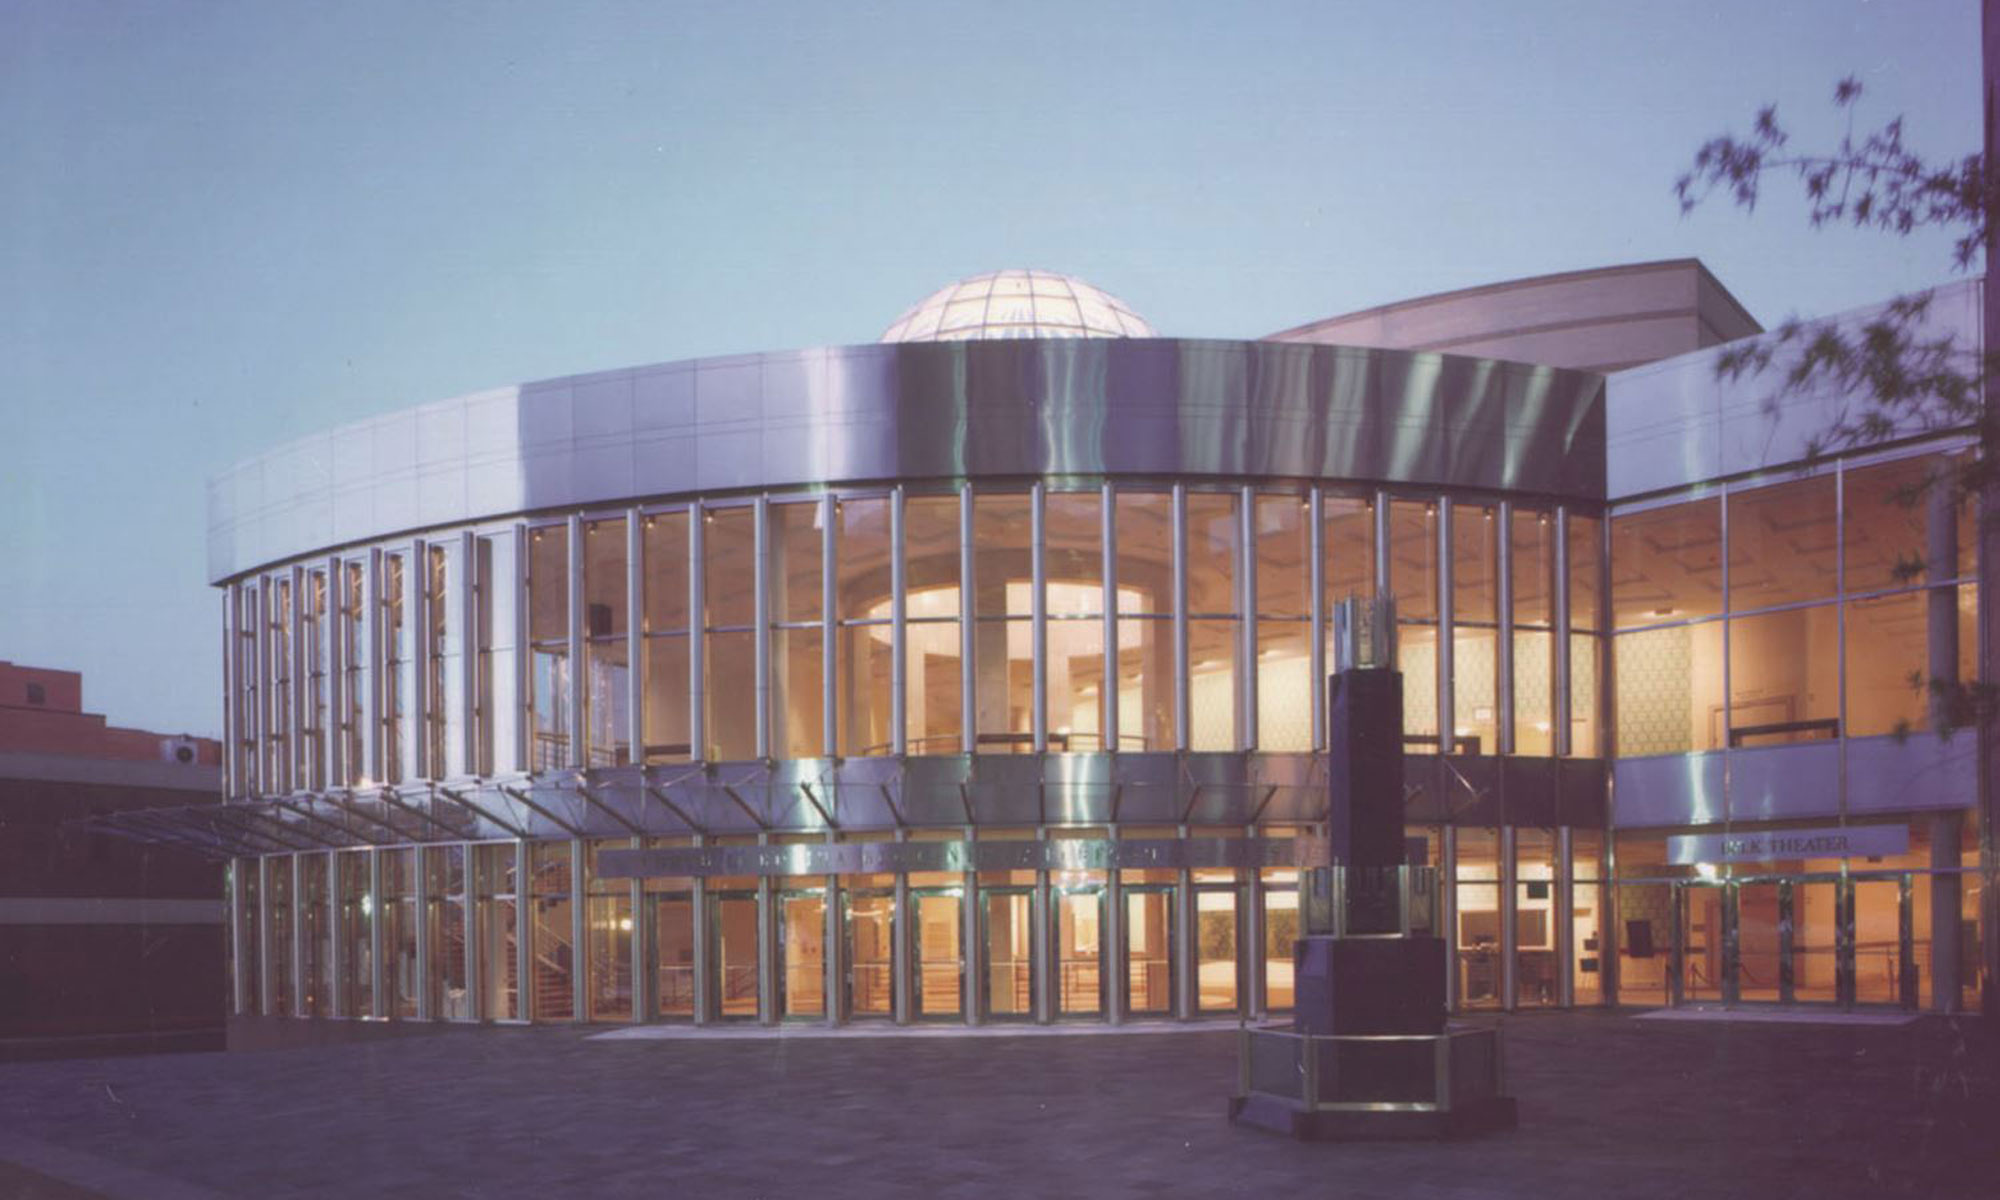 Blumenthal Performing Arts Center Exterior